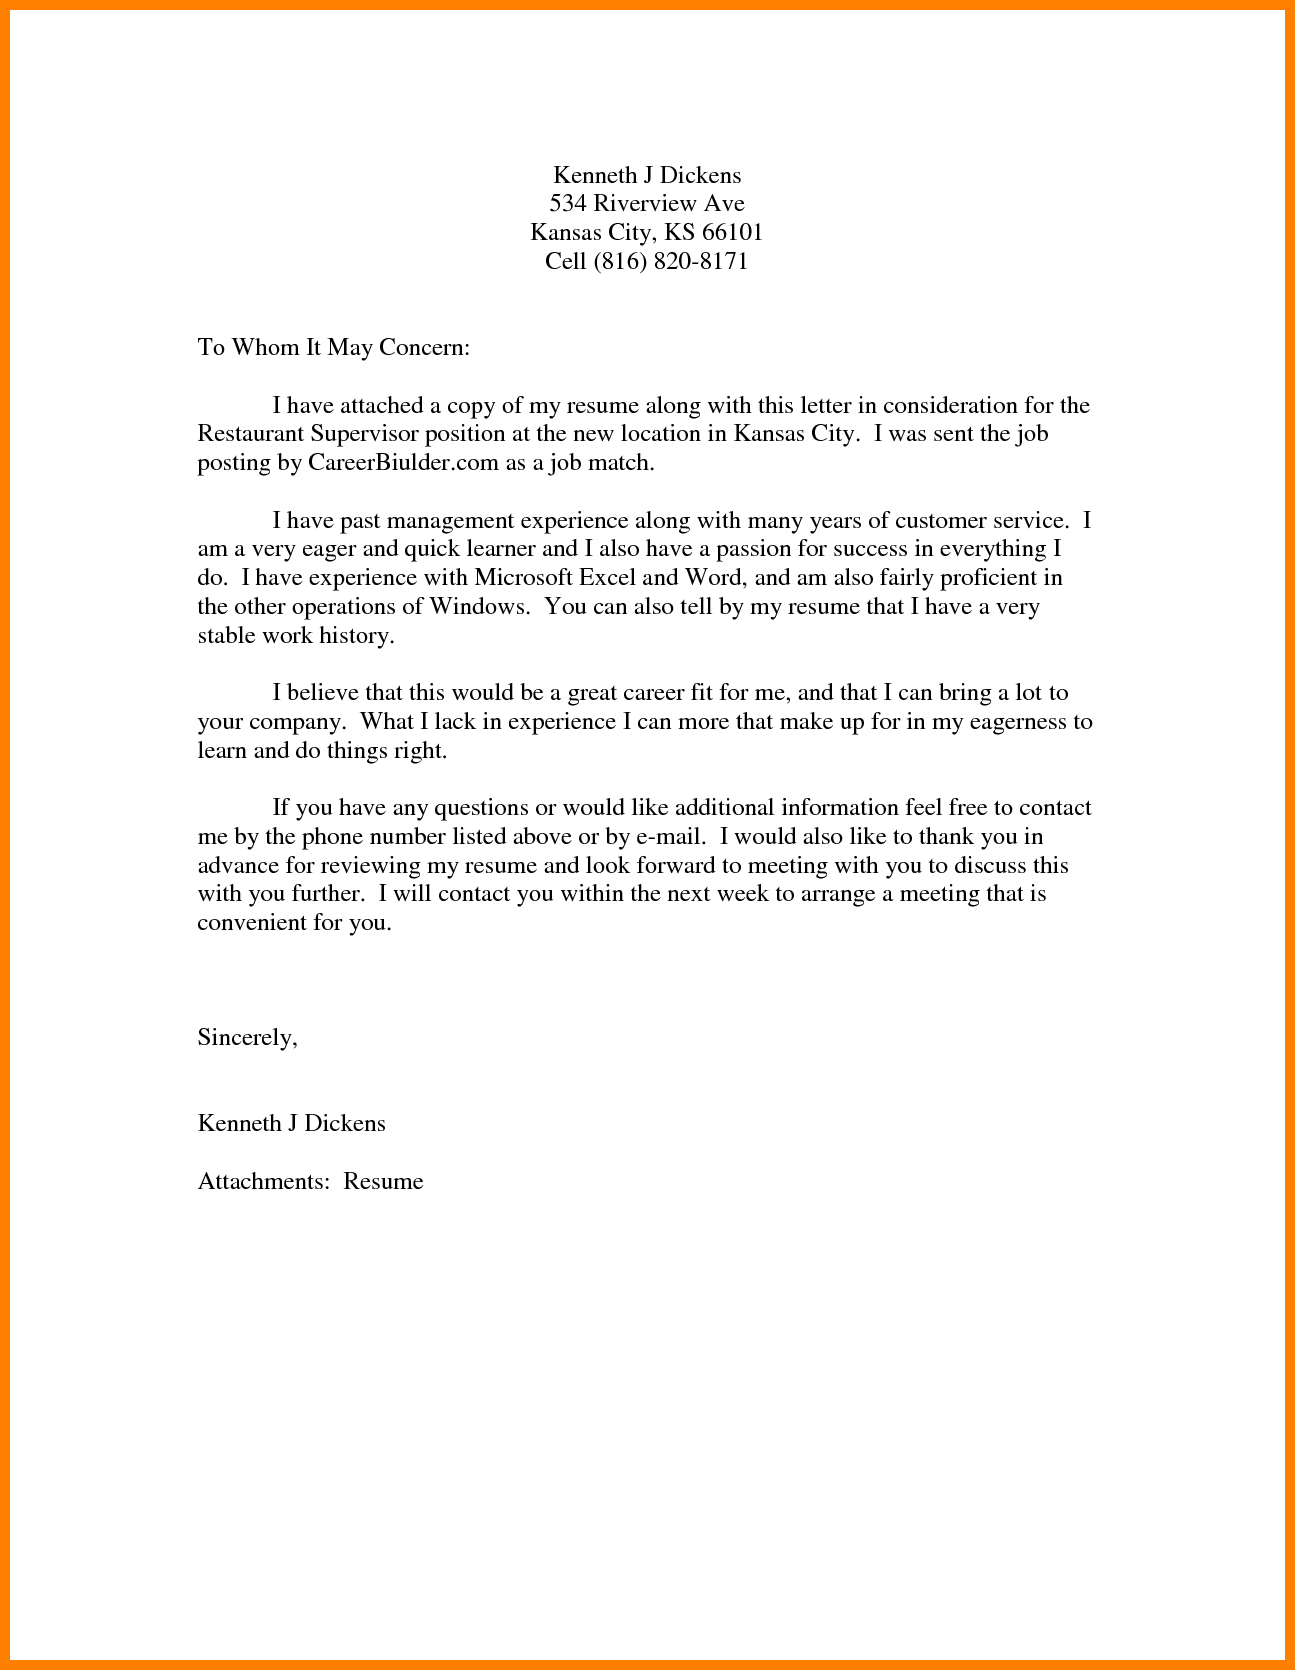 to whom it may concern letter format for school to whom it may concern letter 20090